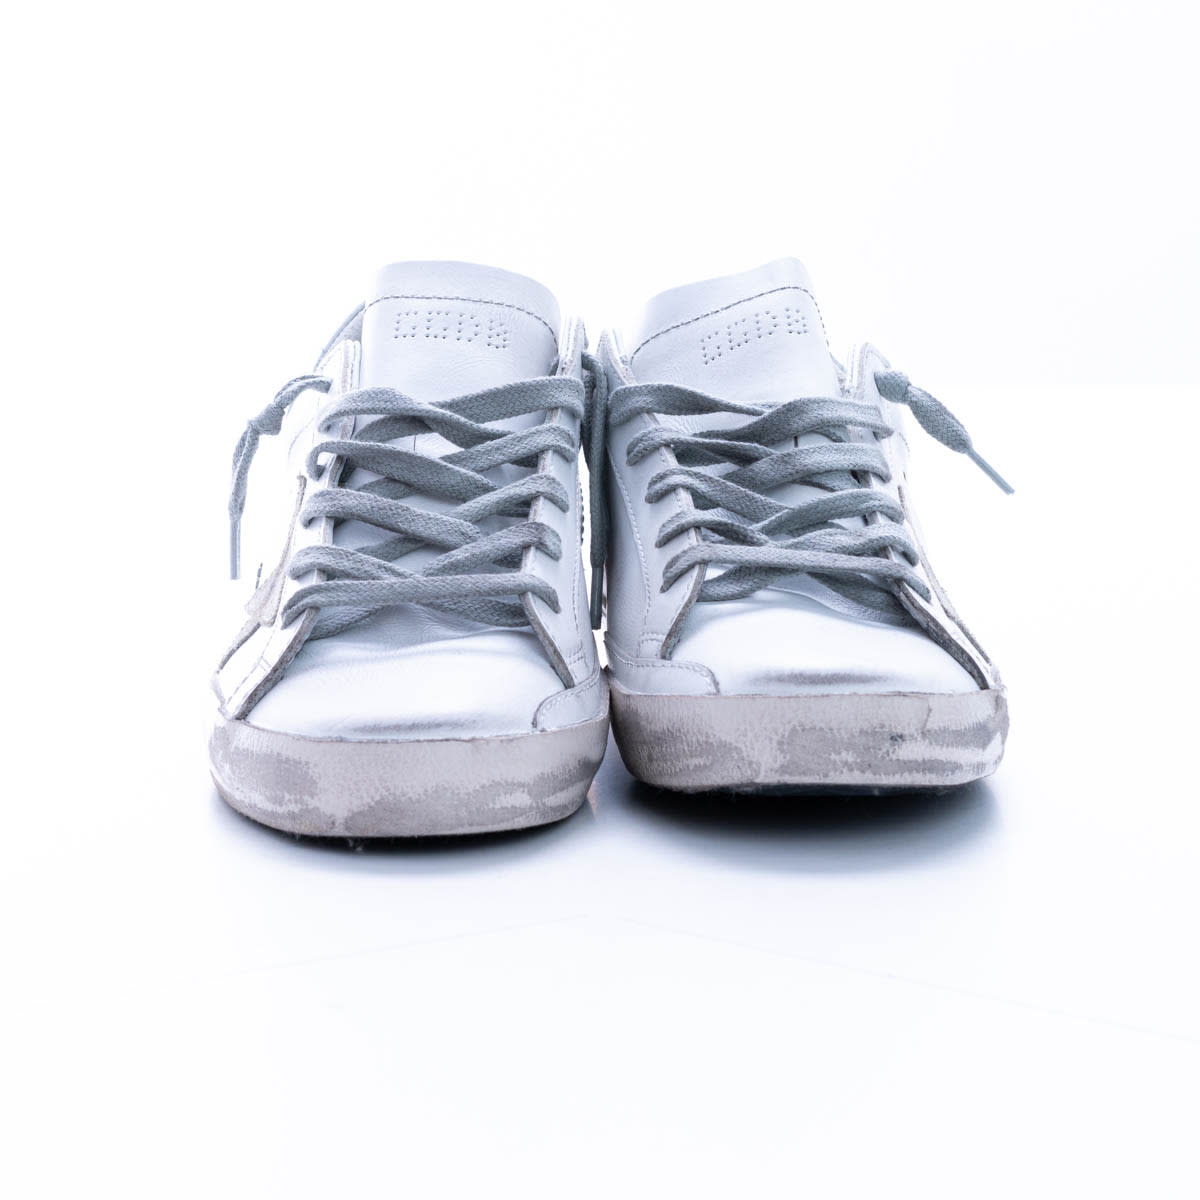 Golden Goose Super-star Sneakers In White - Ice - Silver